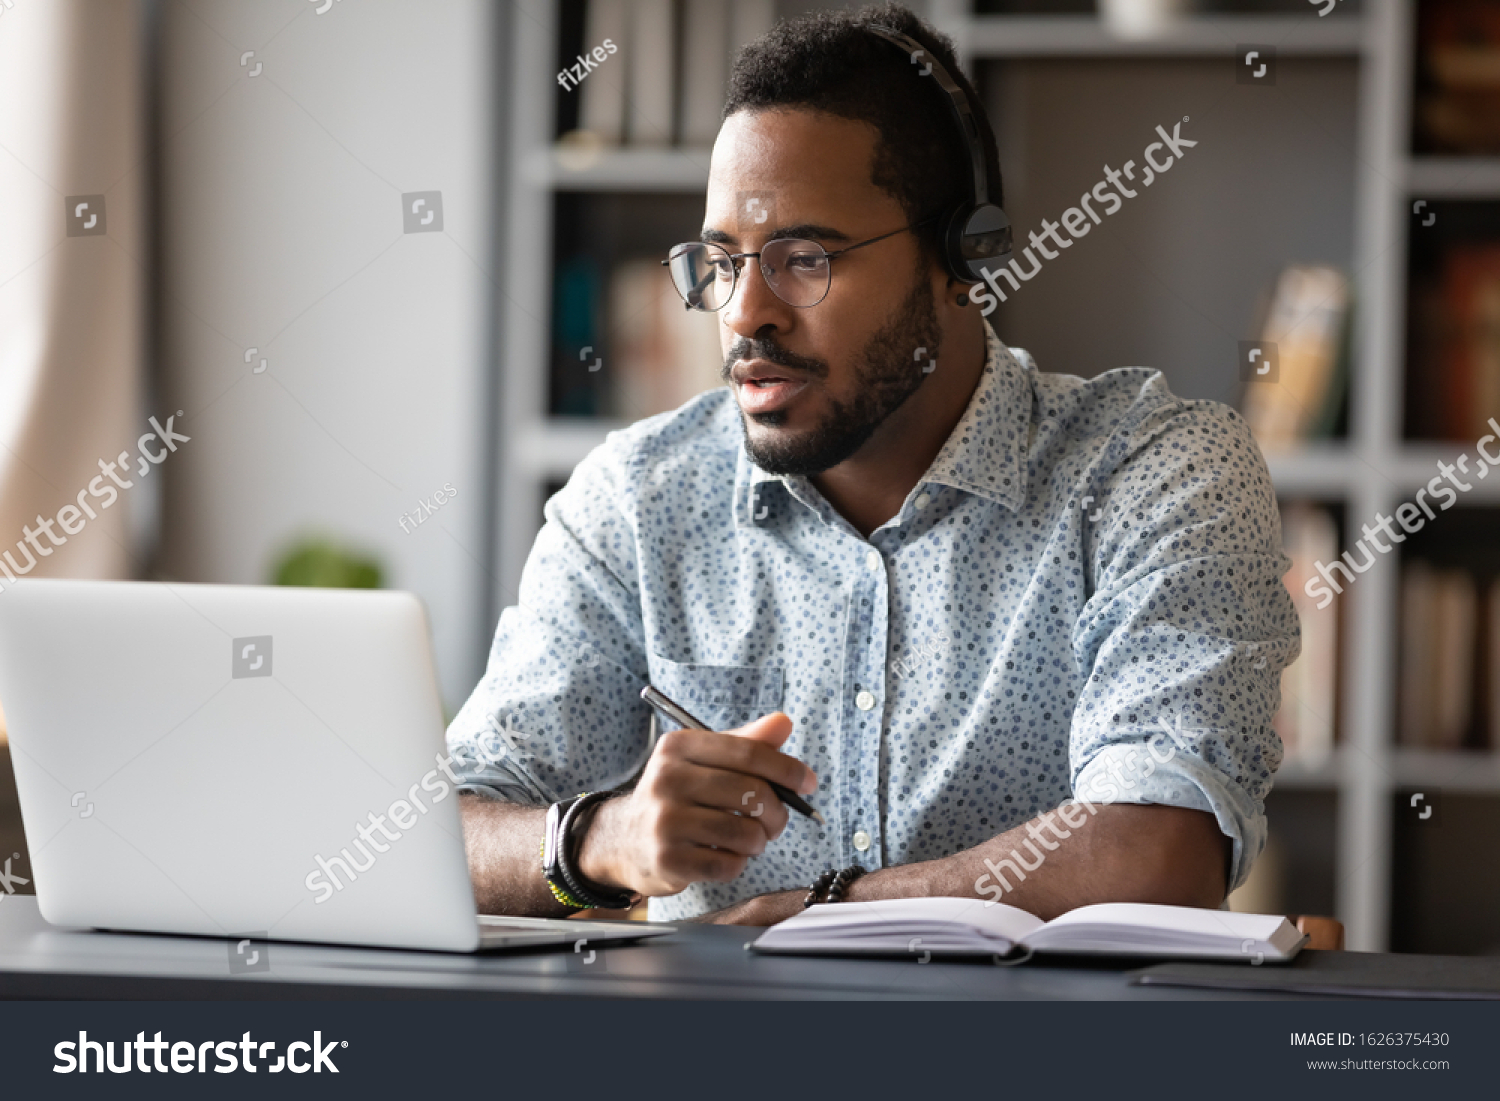 Focused young african businessman wear headphones study online watching webinar podcast on laptop listening learning education course conference calling make notes sit at work desk, elearning concept #1626375430